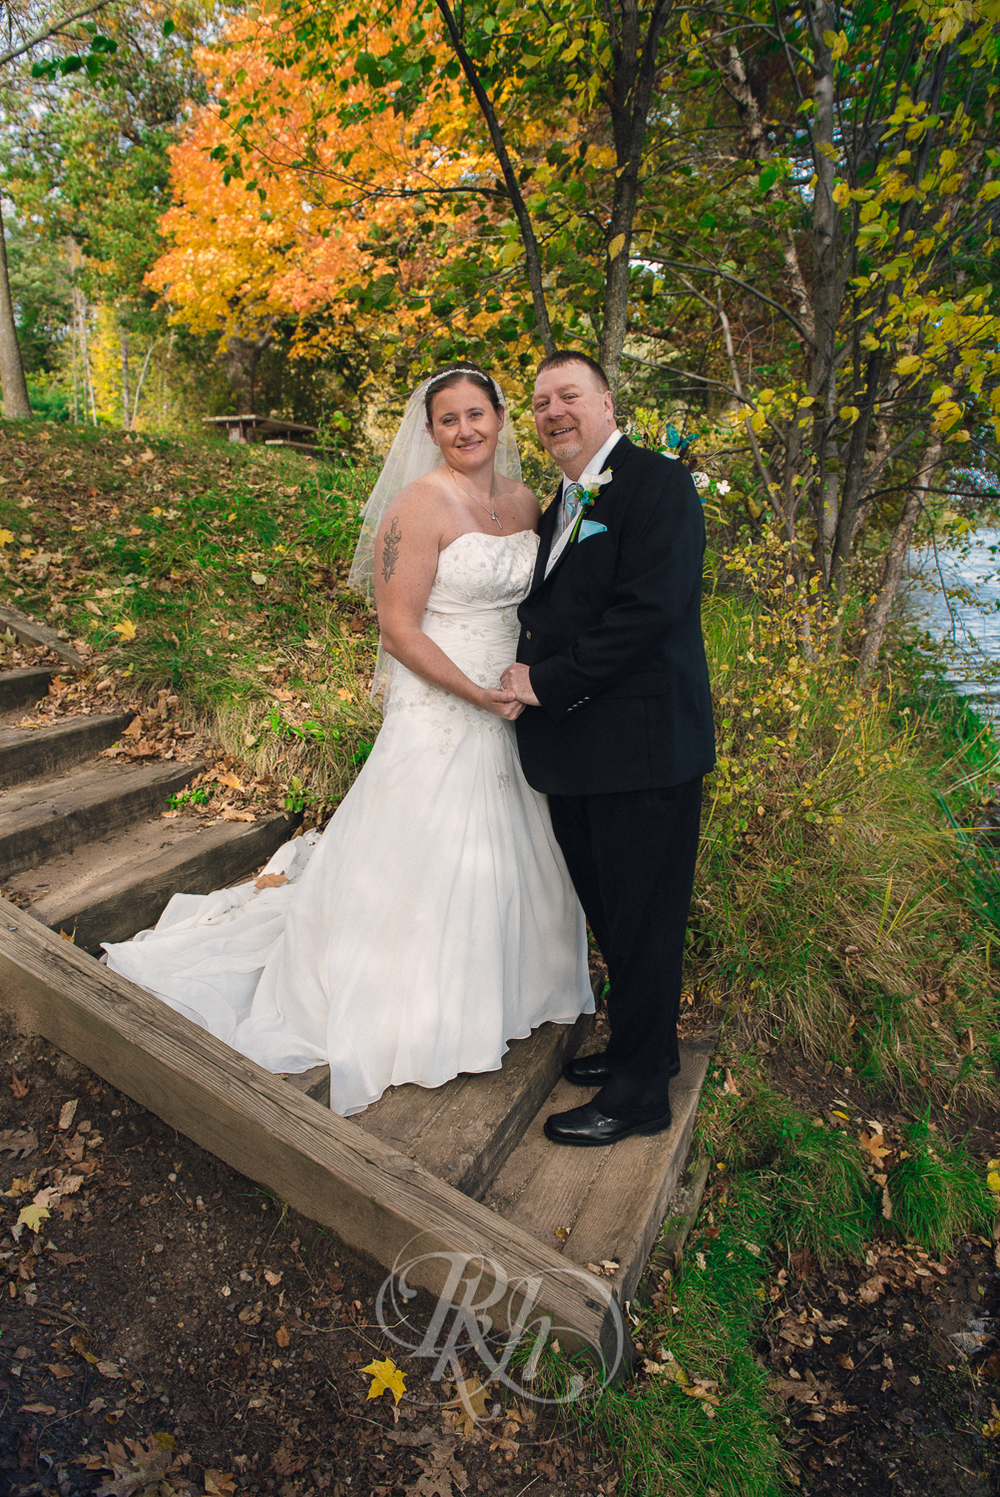 Chippewa Falls Wedding Photography - Jim & Holly - RKH Images-21